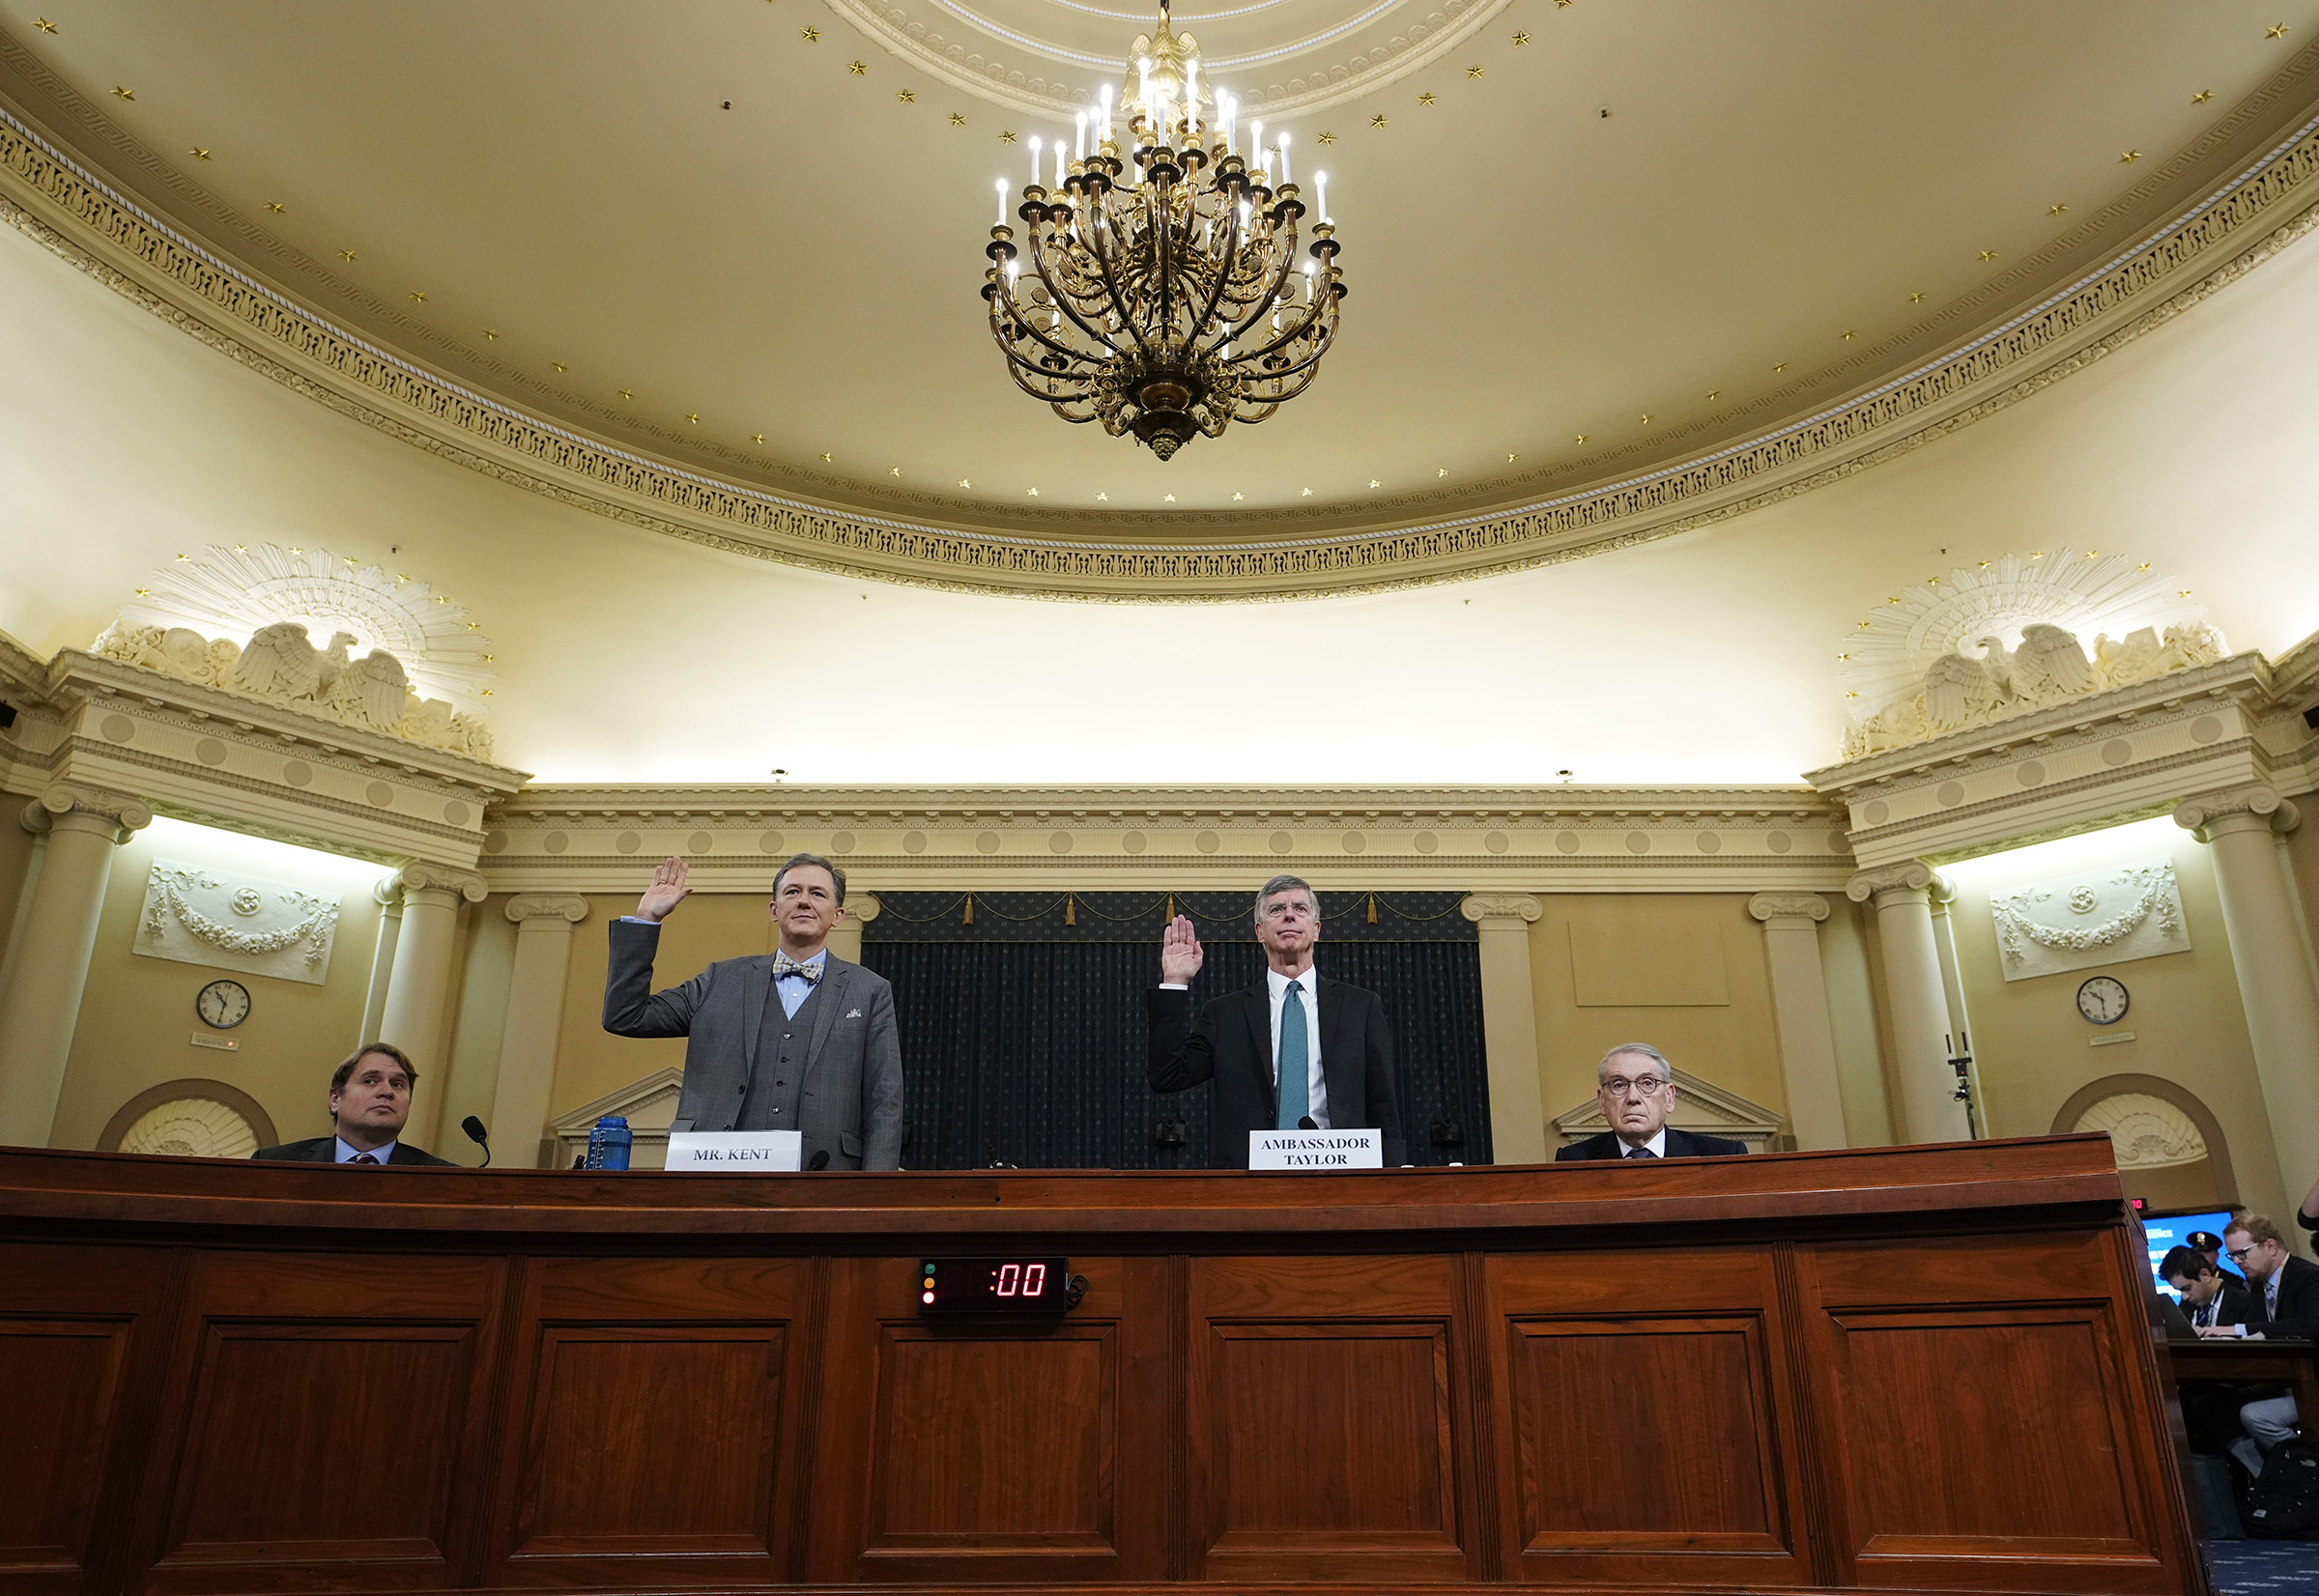 (L-R) Deputy Assistant Secretary for European and Eurasian Affairs George P. Kent and top U.S. diplomat in Ukraine William B. Taylor Jr. are sworn-in prior to testifying before the House Intelligence Committee in the Longworth House Office Building on Capitol Hill on Nov. 13, 2019.